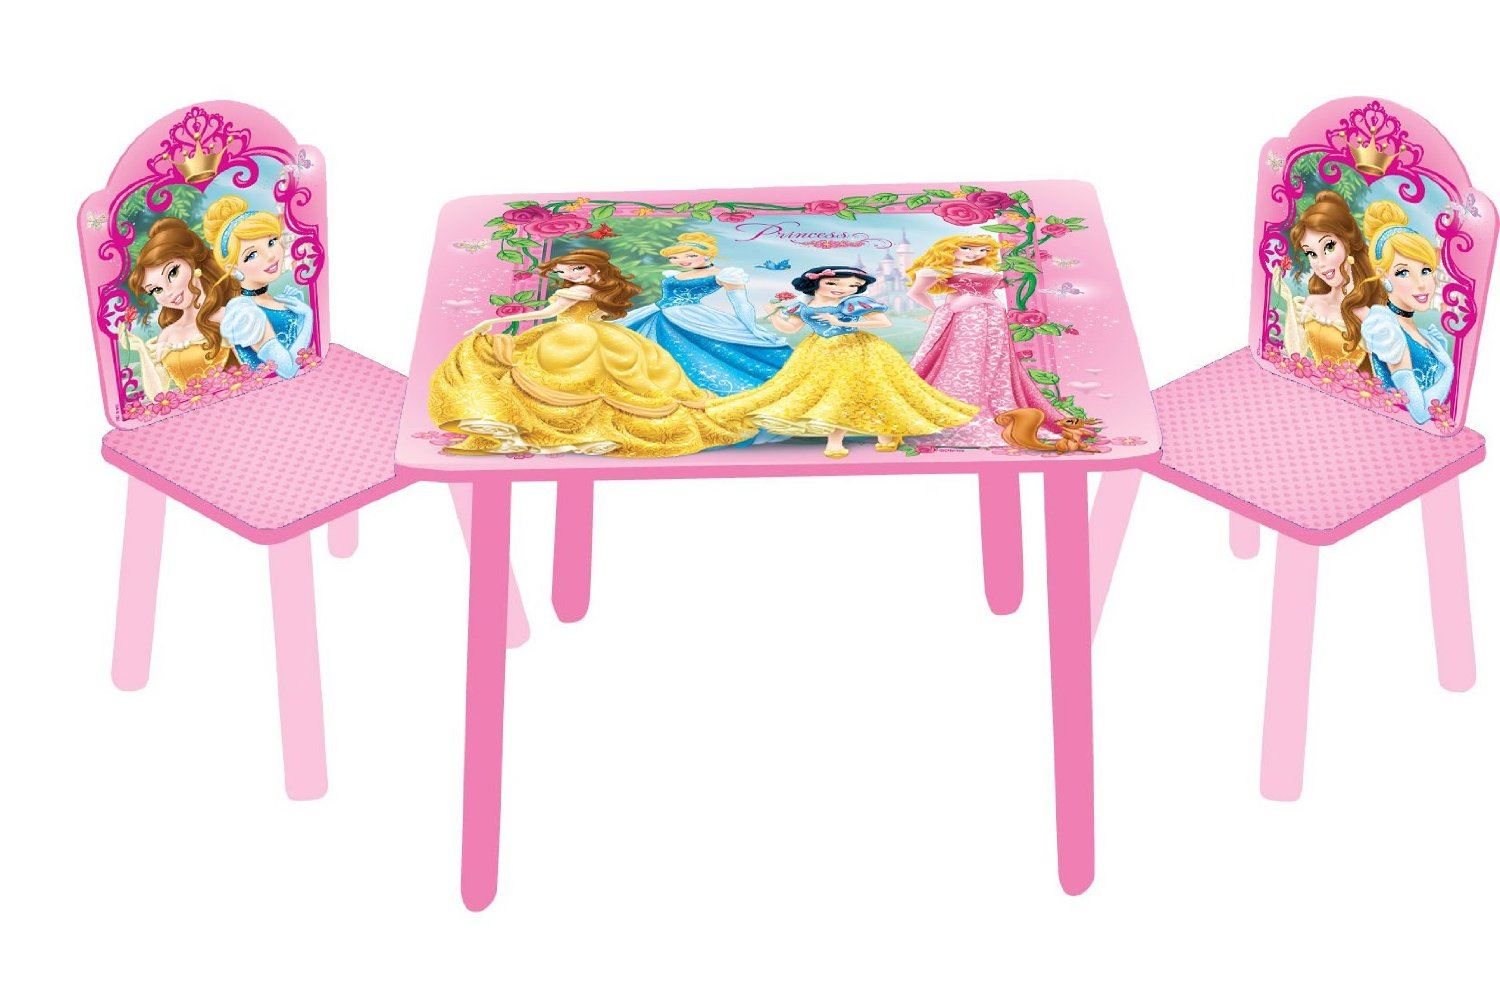 Princess Chairs For Toddlers Disney Princess Frozen Furniture Table And Chairs Set